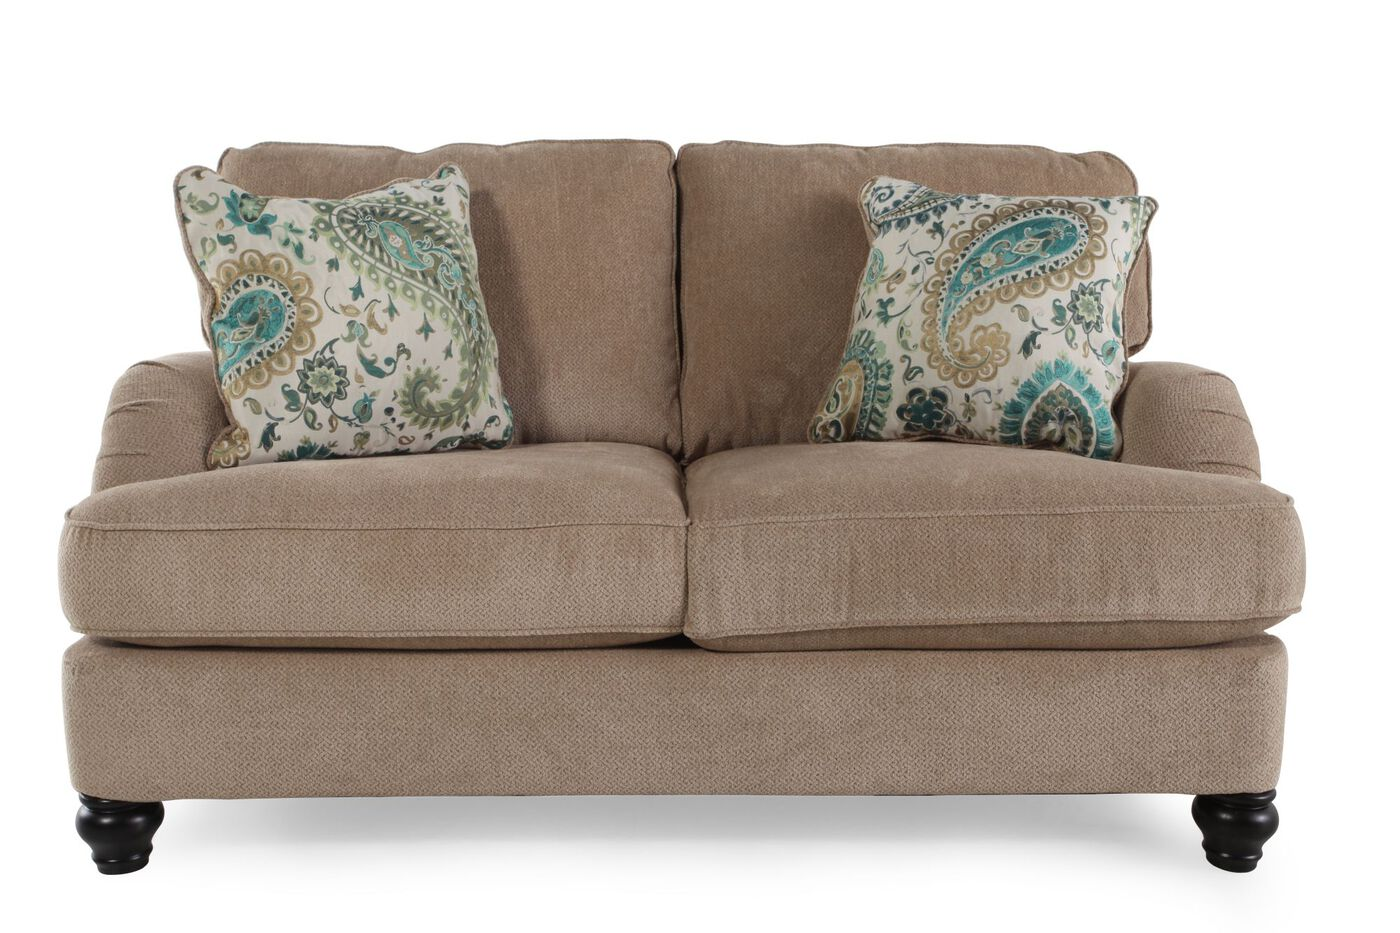 Ashley lochian bisque loveseat mathis brothers furniture for Mathis brothers living room furniture